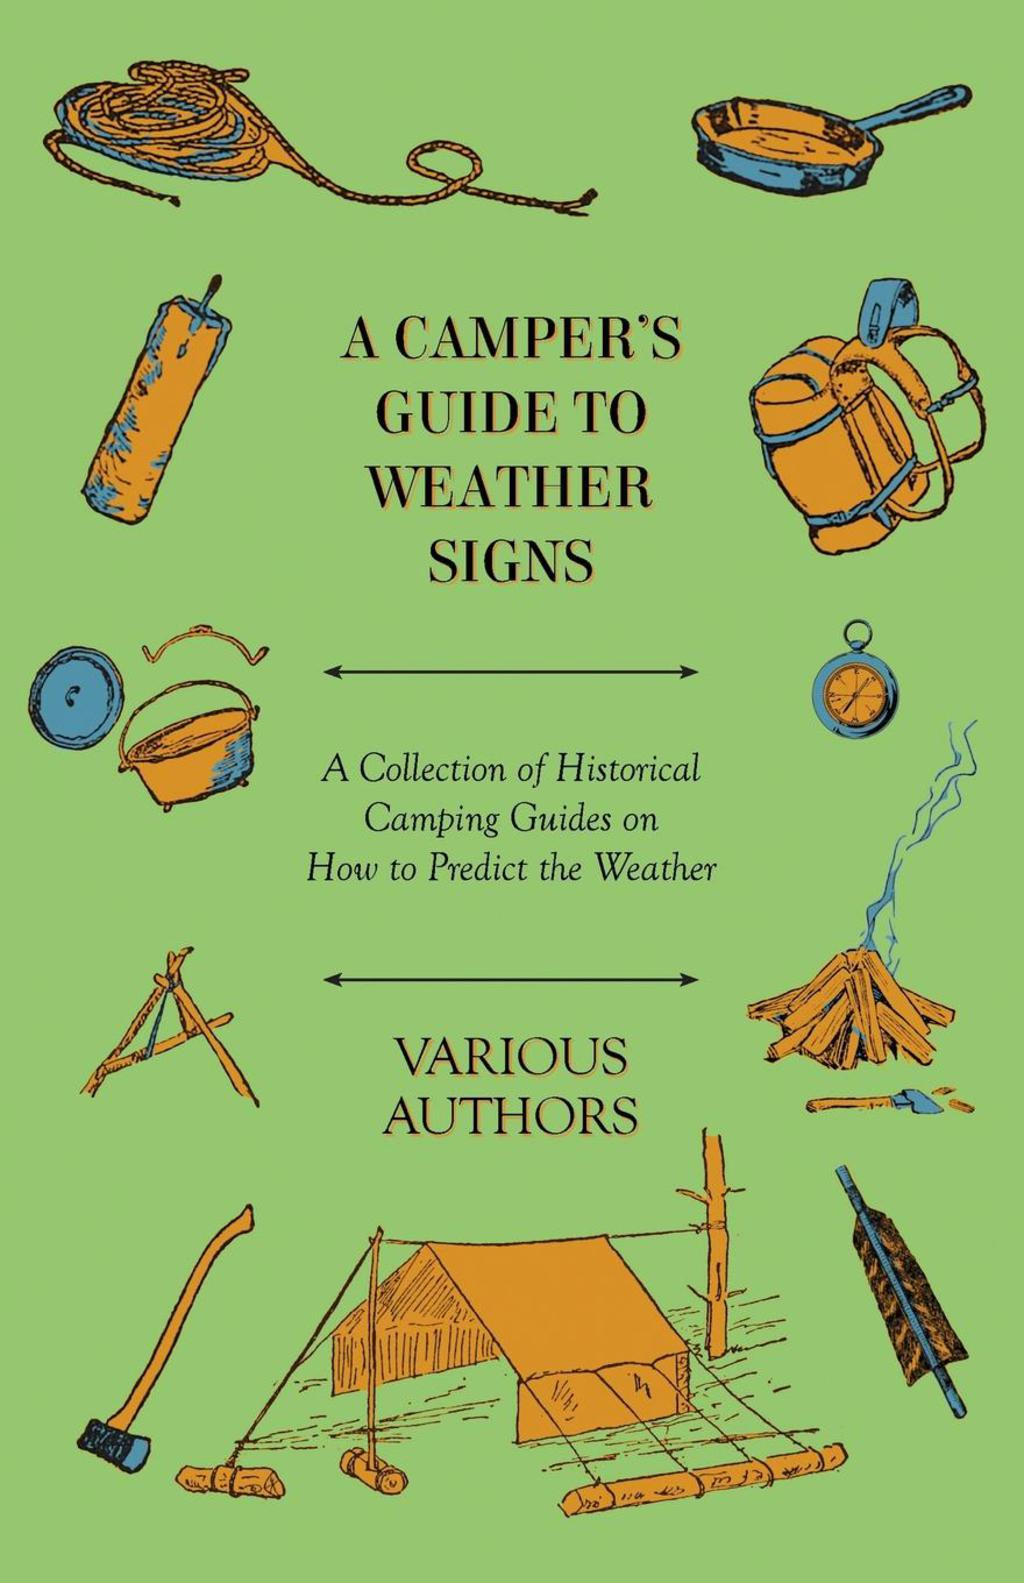 A Camper's Guide to Weather Signs - A Collection of Historical Camping Guides on How to Predict the Weather (ebook) eBooks